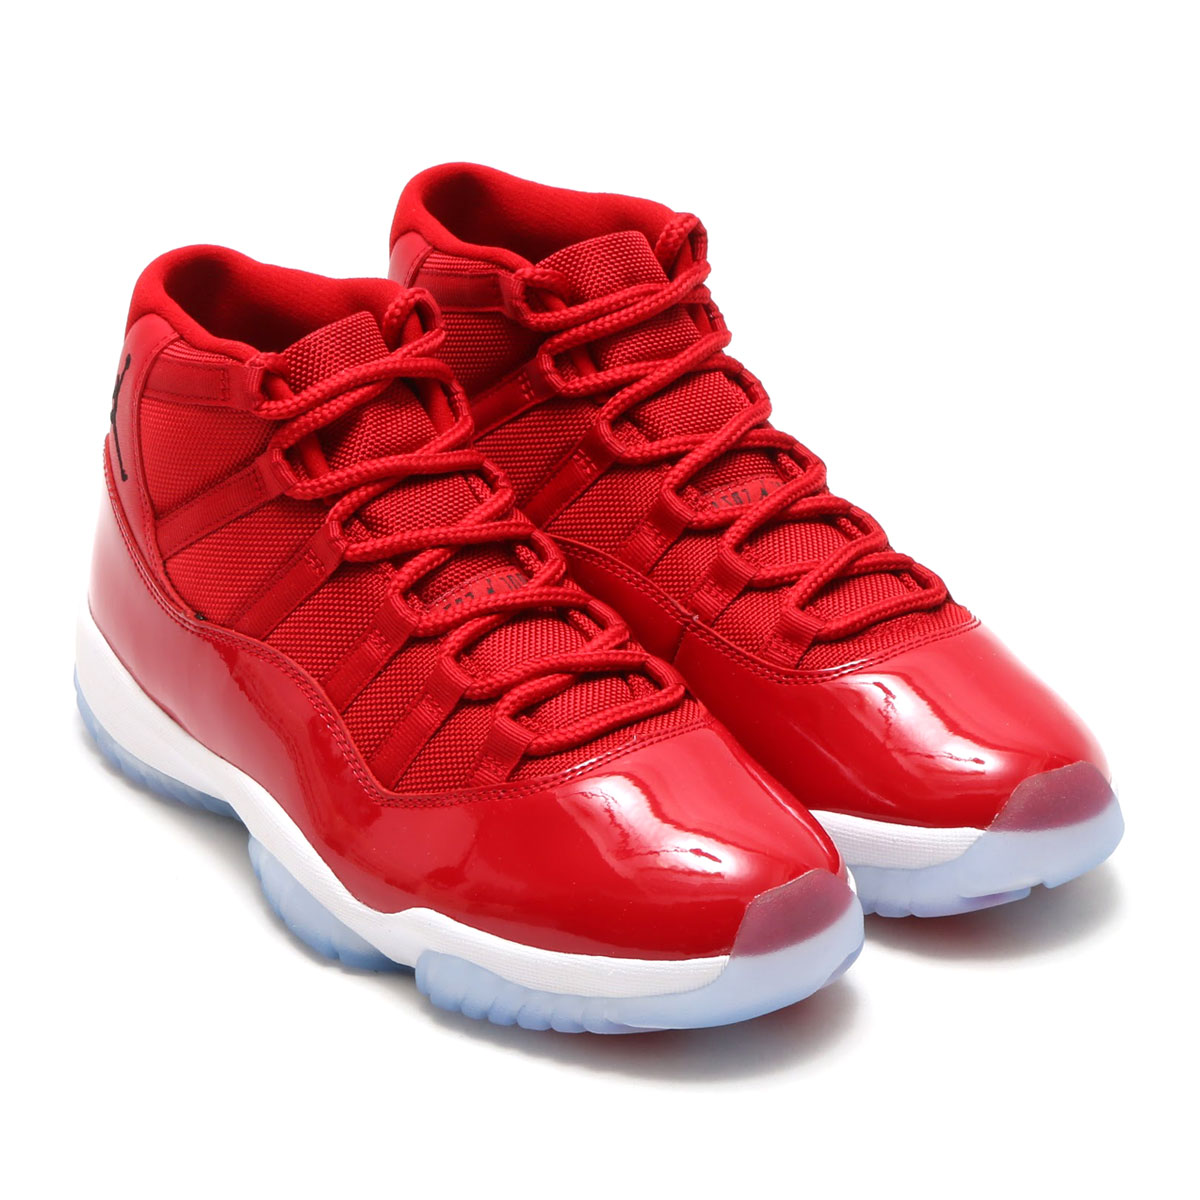 newest 54ee2 894f1 coupon code for nike jordan 11 red 7fd7d 1f32e